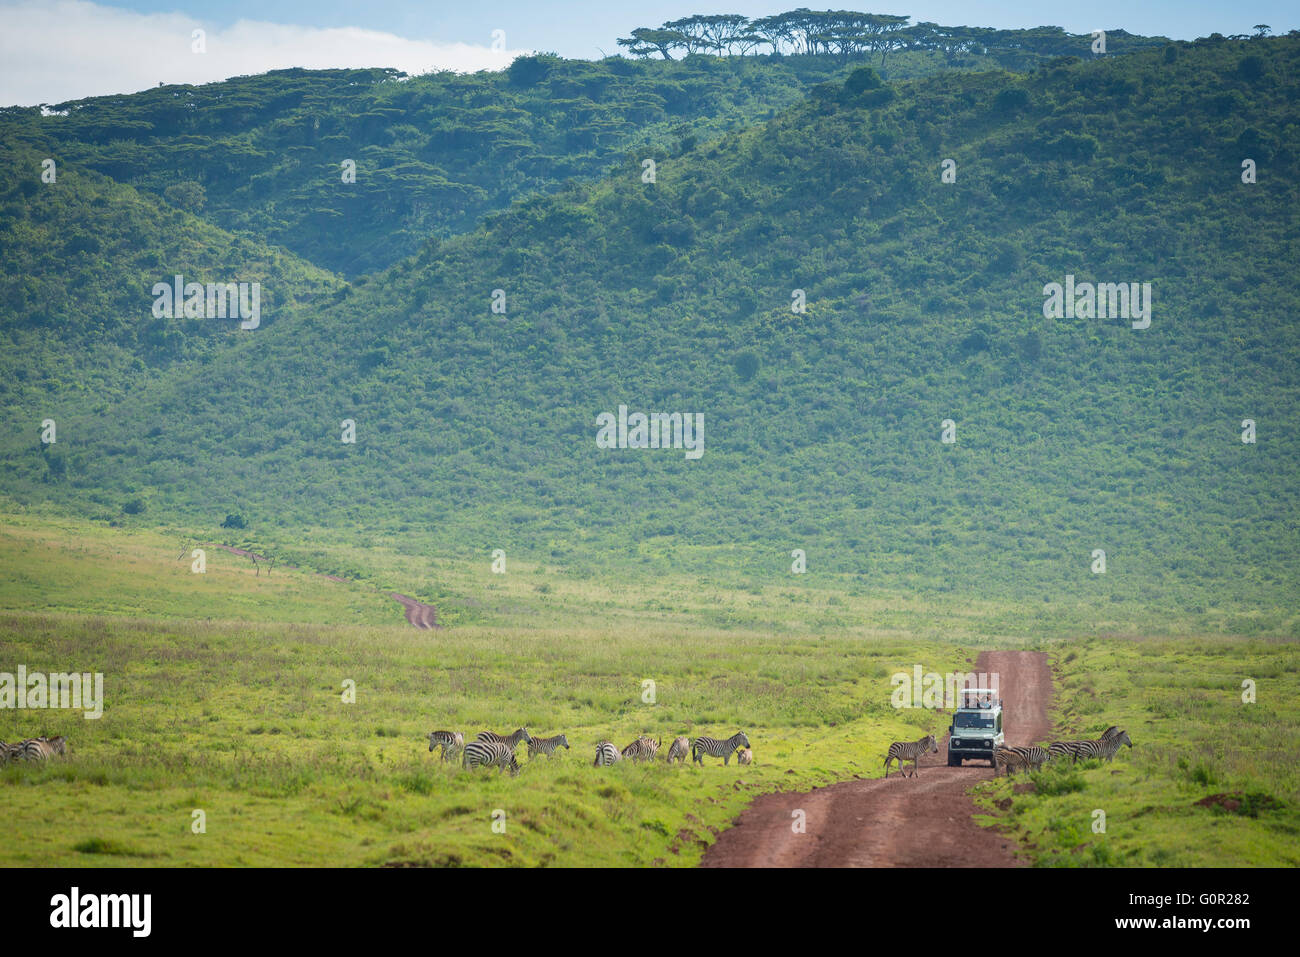 A tourist safari jeep travels along a dirt track amongst wild zebra in the Ngorongoro Crater, Tanzania, East Africa - Stock Image